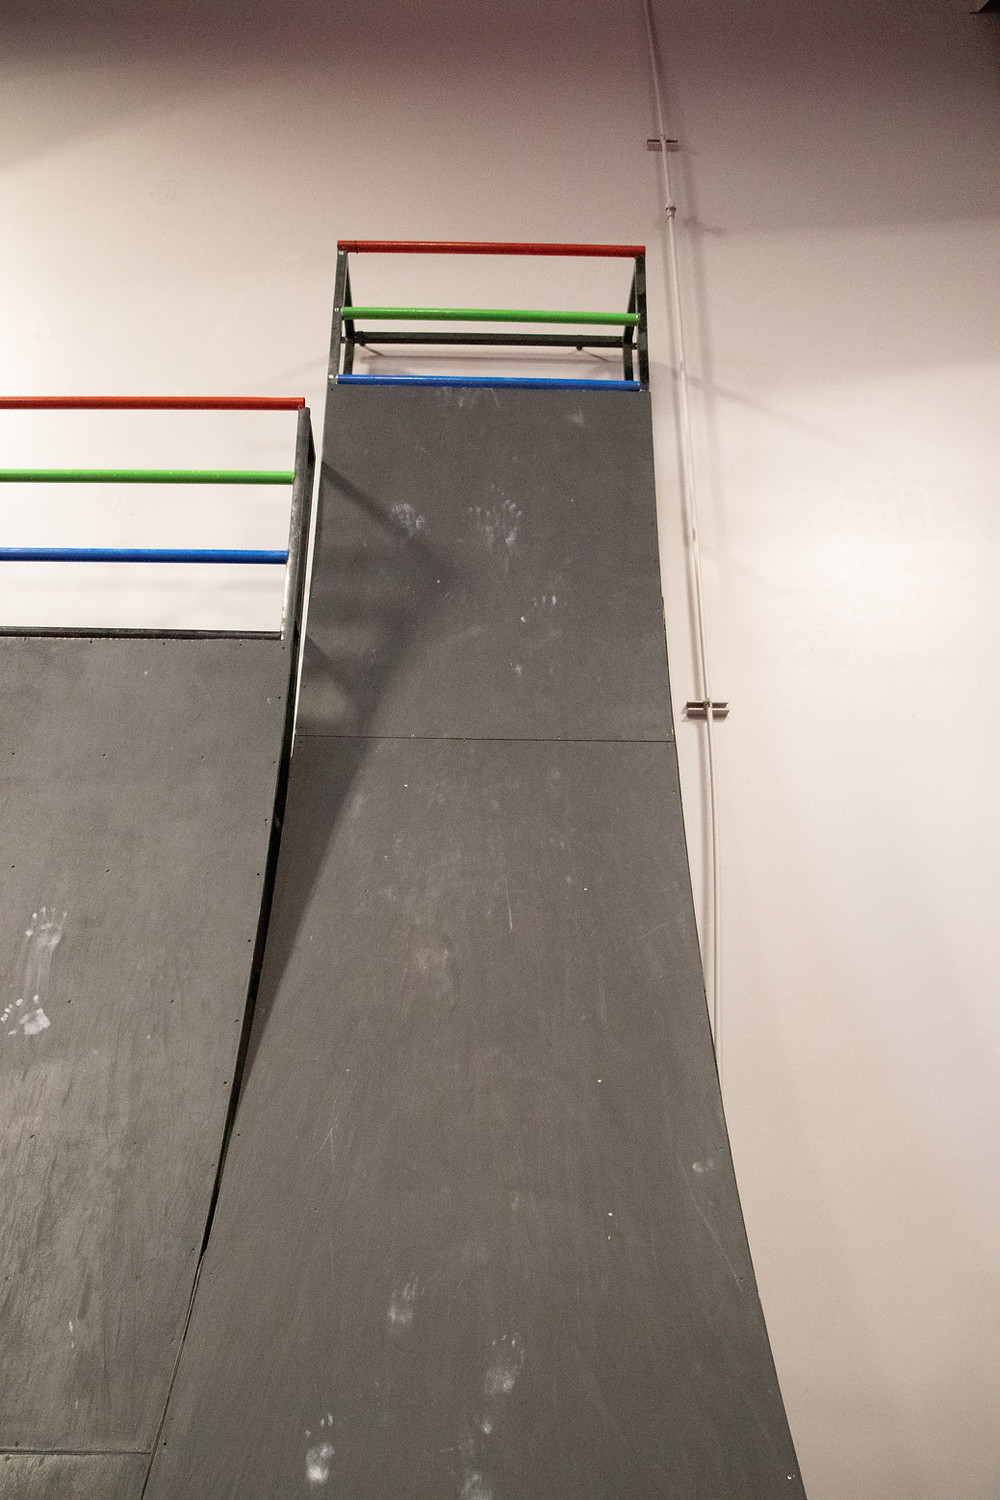 The 18 foot warped wall